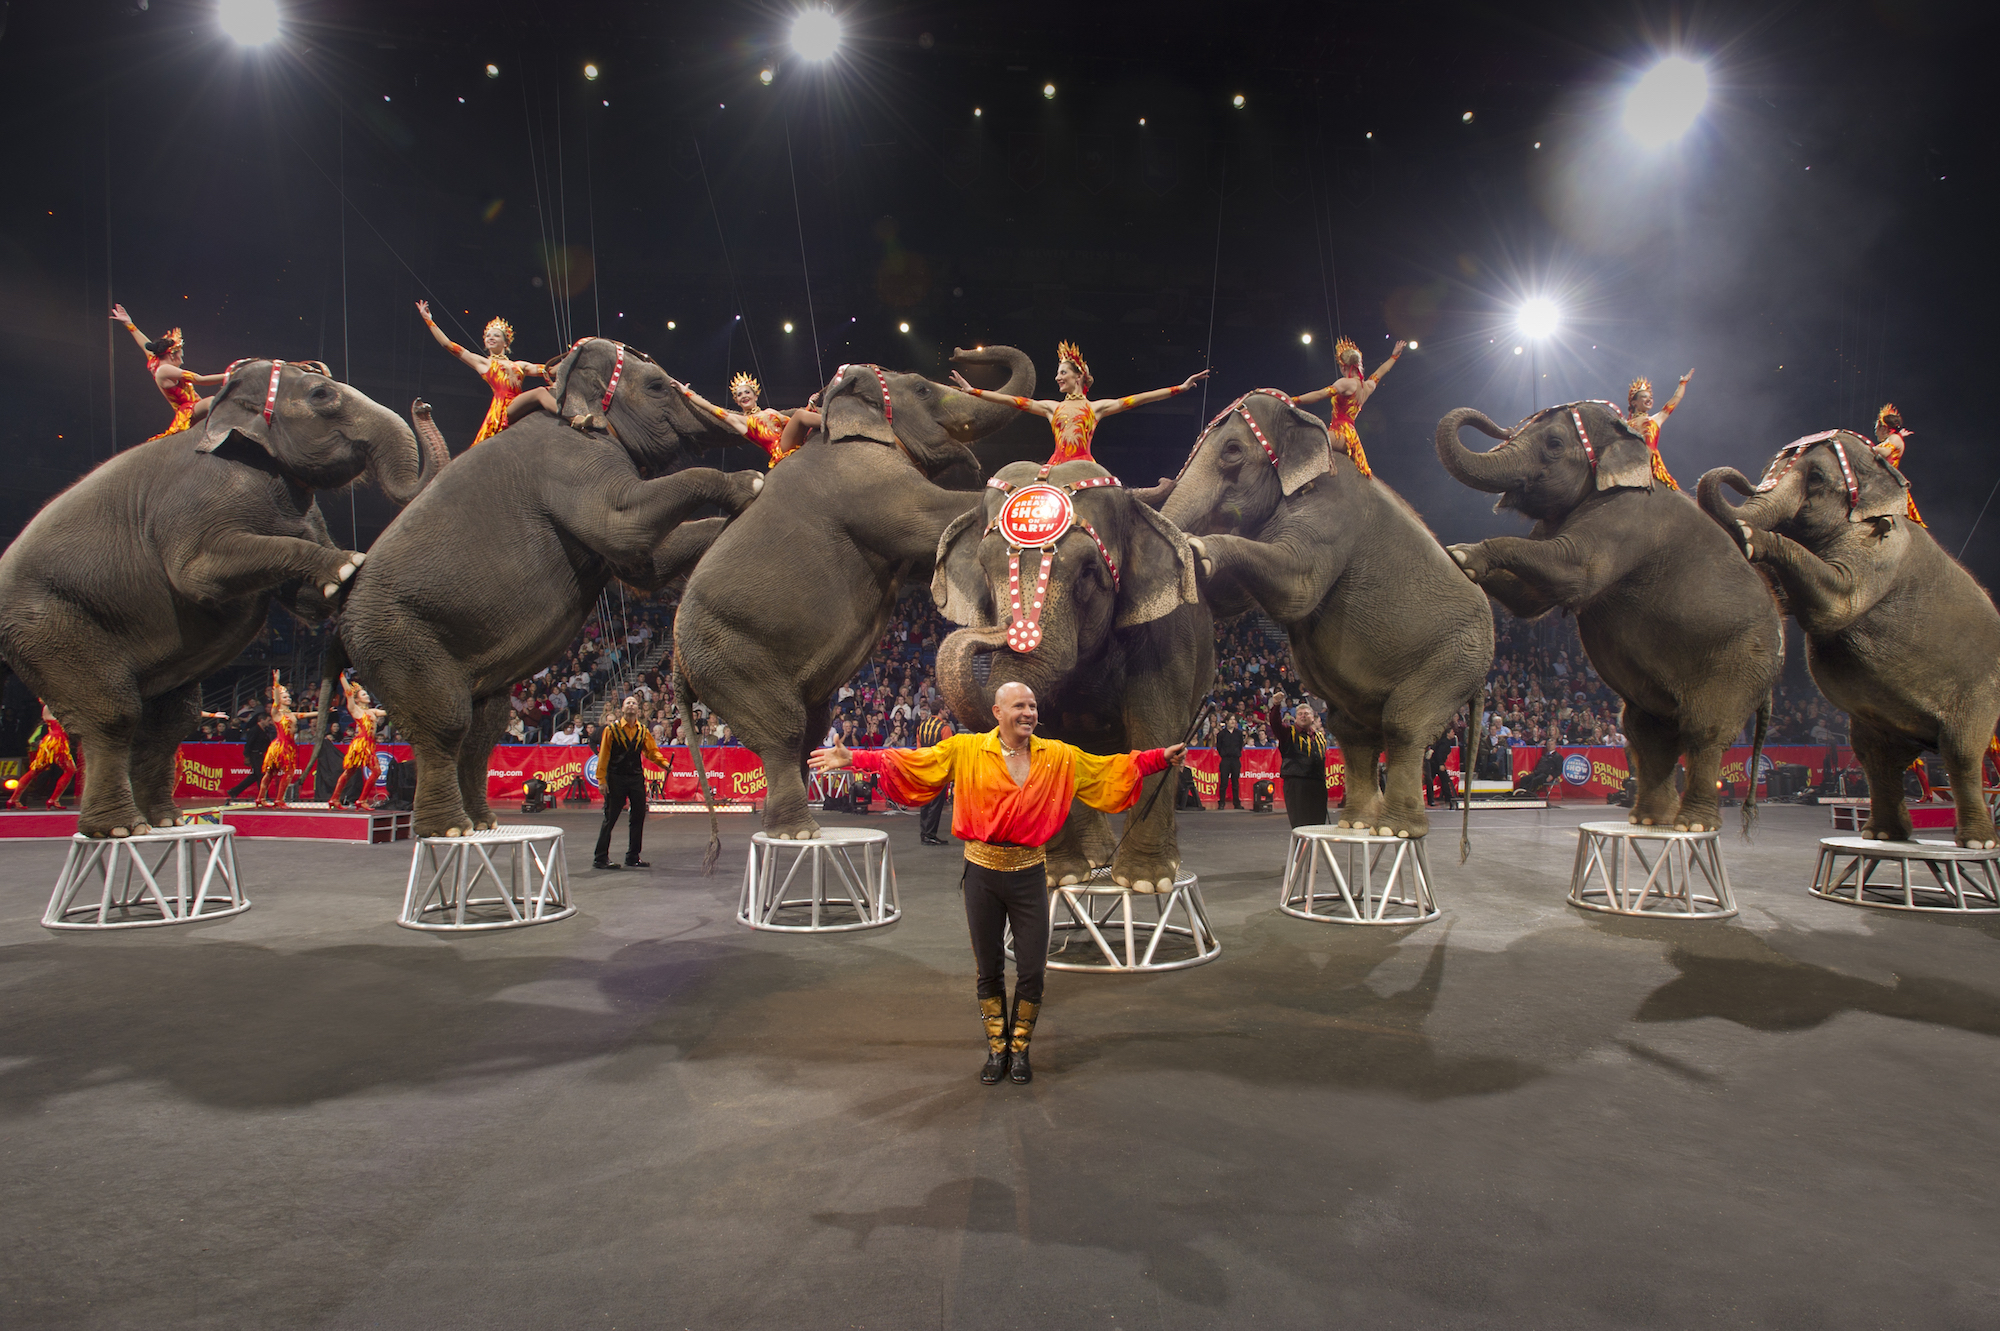 The Ringling Bros. and Barnum & Bailey Circus' parent company announced that elephant acts will end by May 2016 over growing public concern about the animals